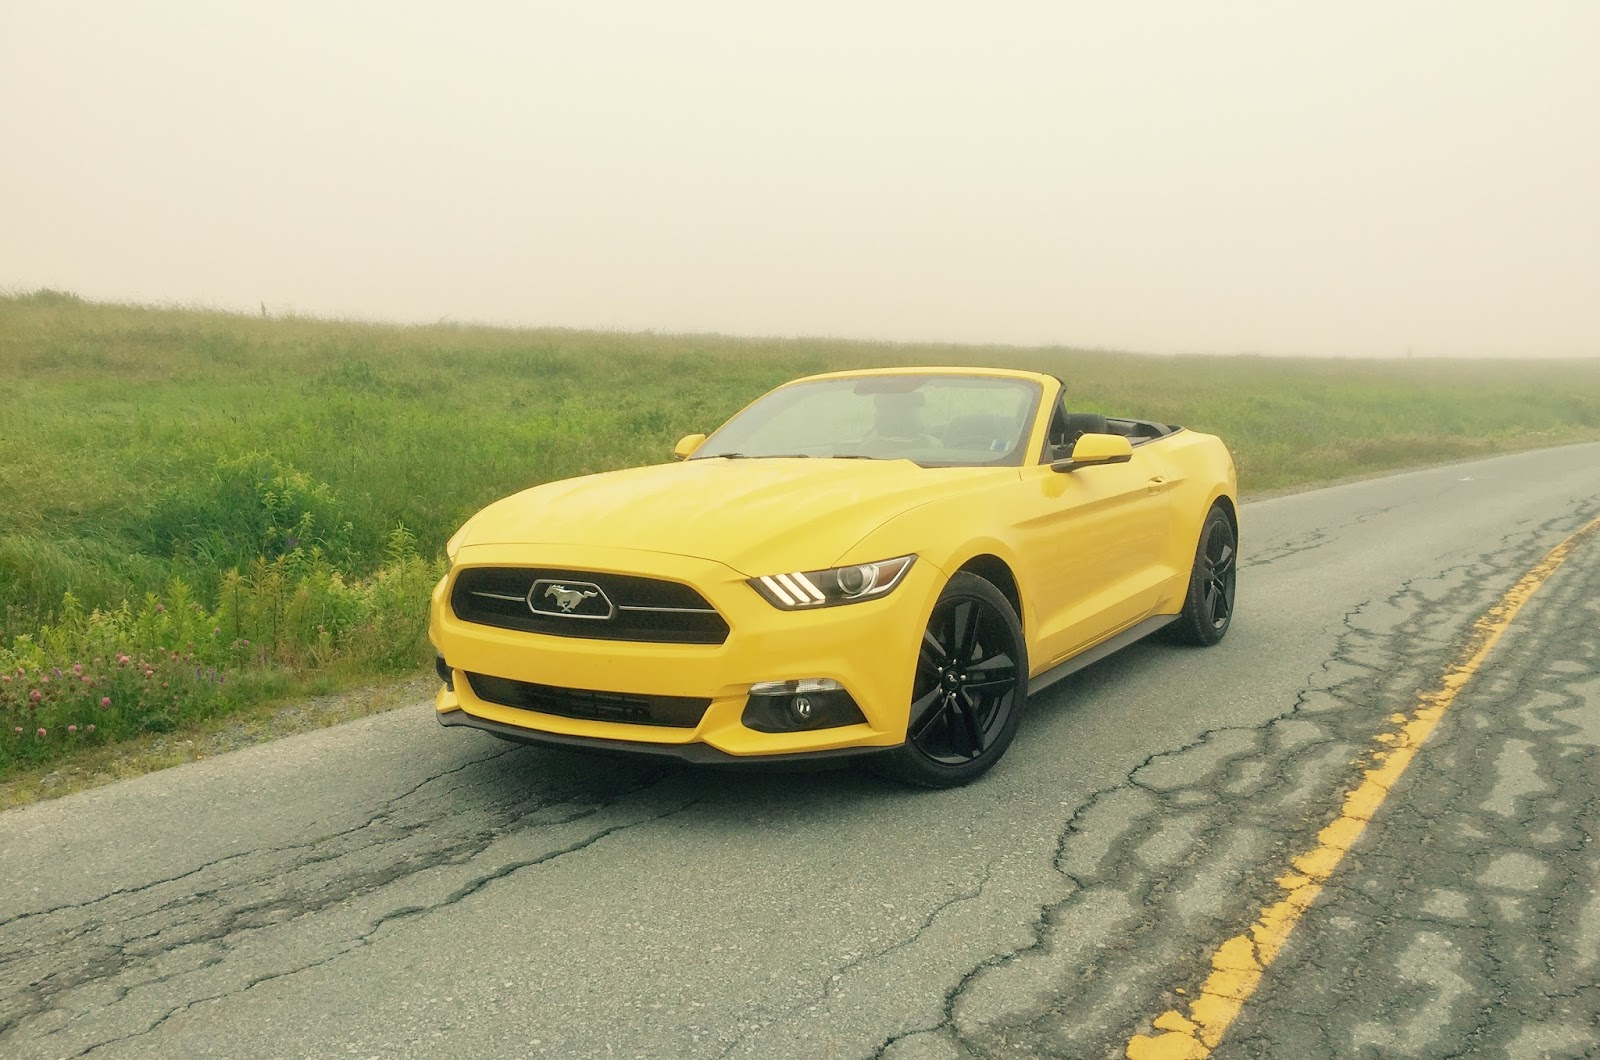 2015 Ford Mustang Ecoboost Convertible Review Great Car With This Yellow 50th Anniversary Package